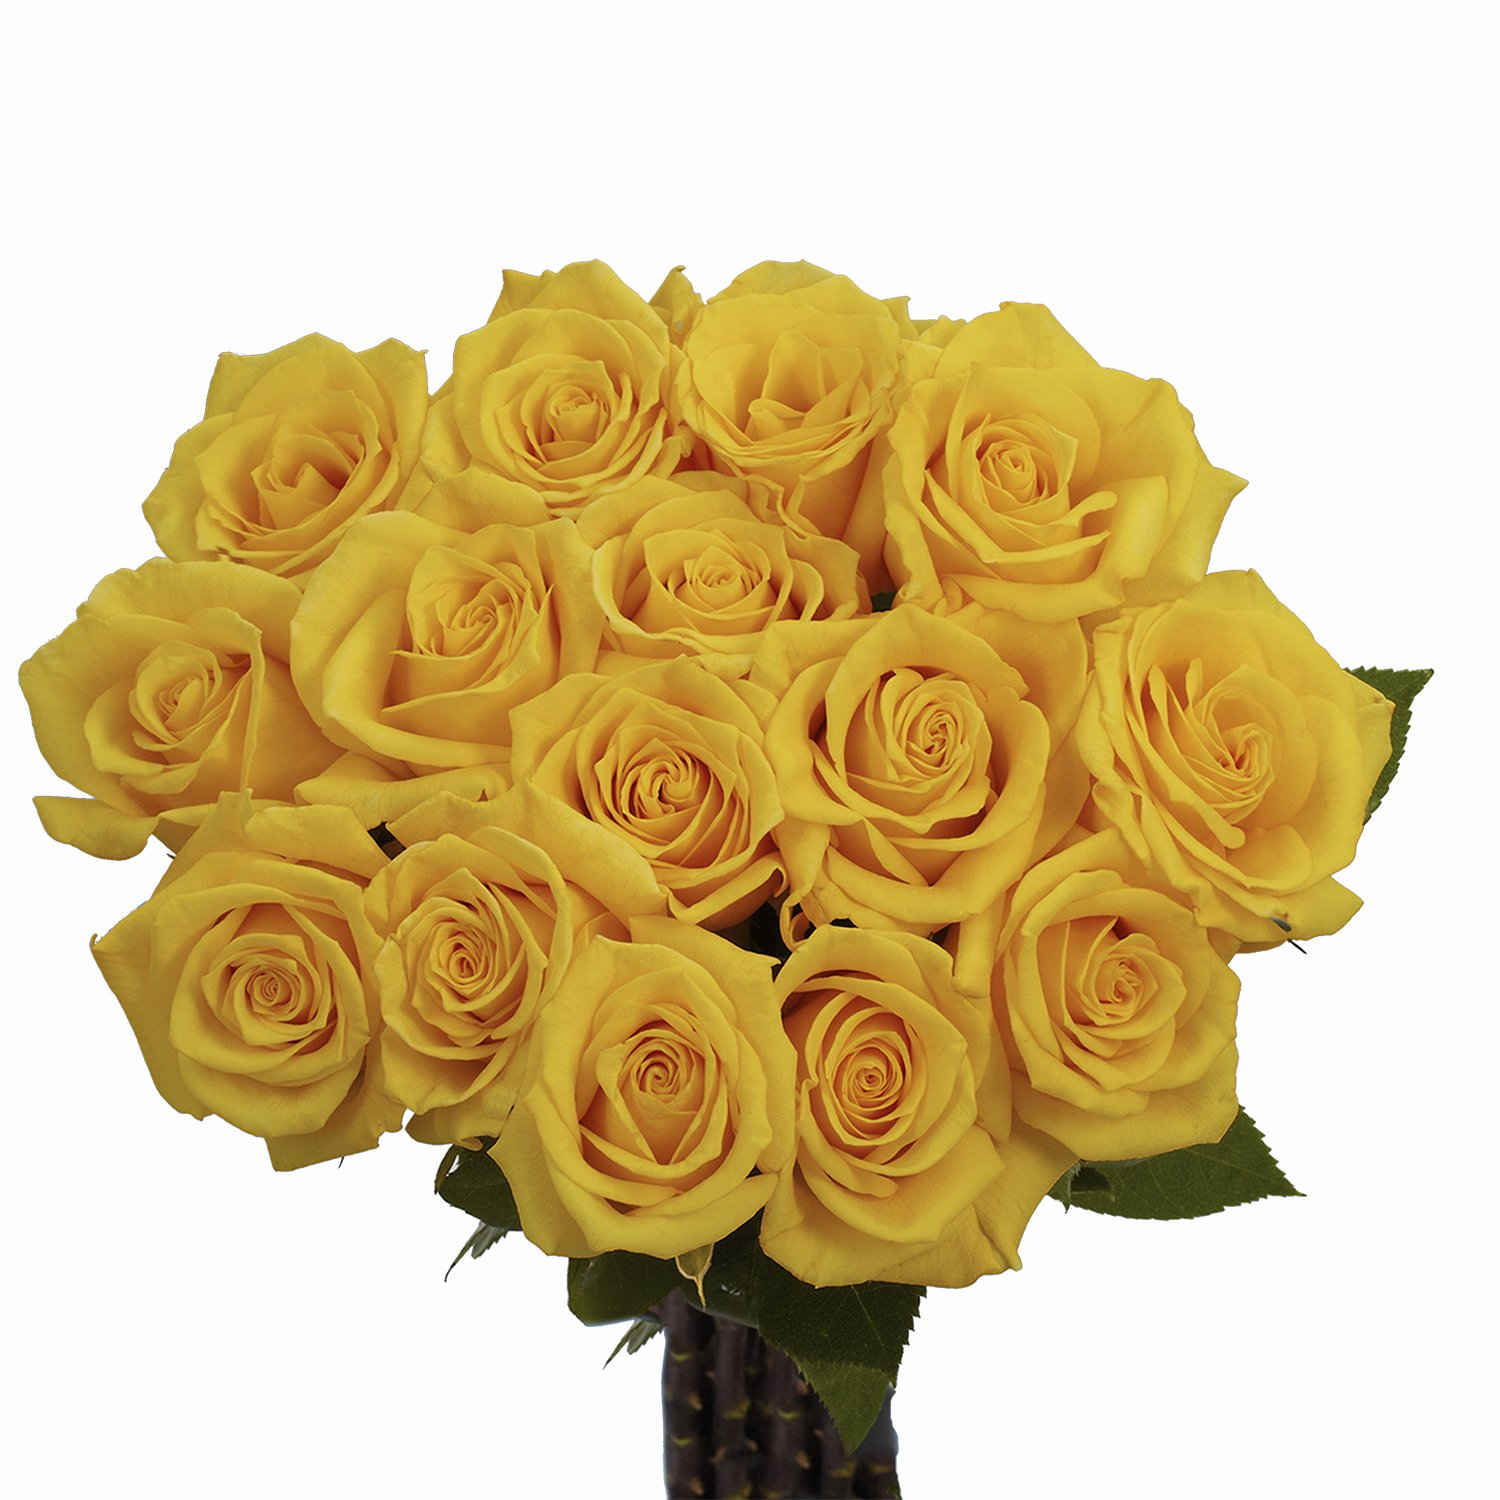 GlobalRose Yellow Roses - Fresh Flowers Delivery- 50 Long Stems by GlobalRose